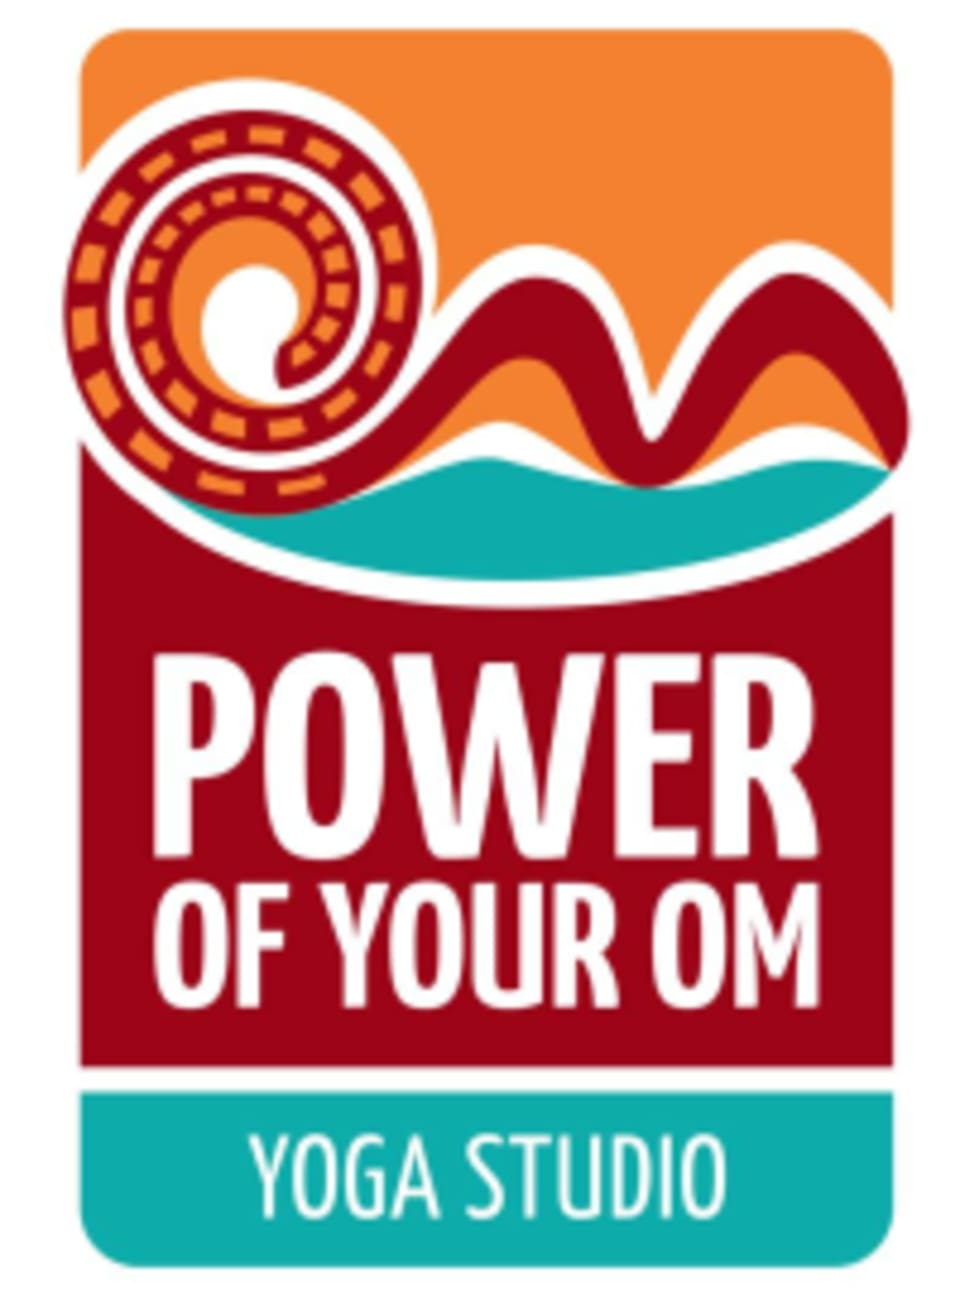 Power of Your Om Yoga Studio logo